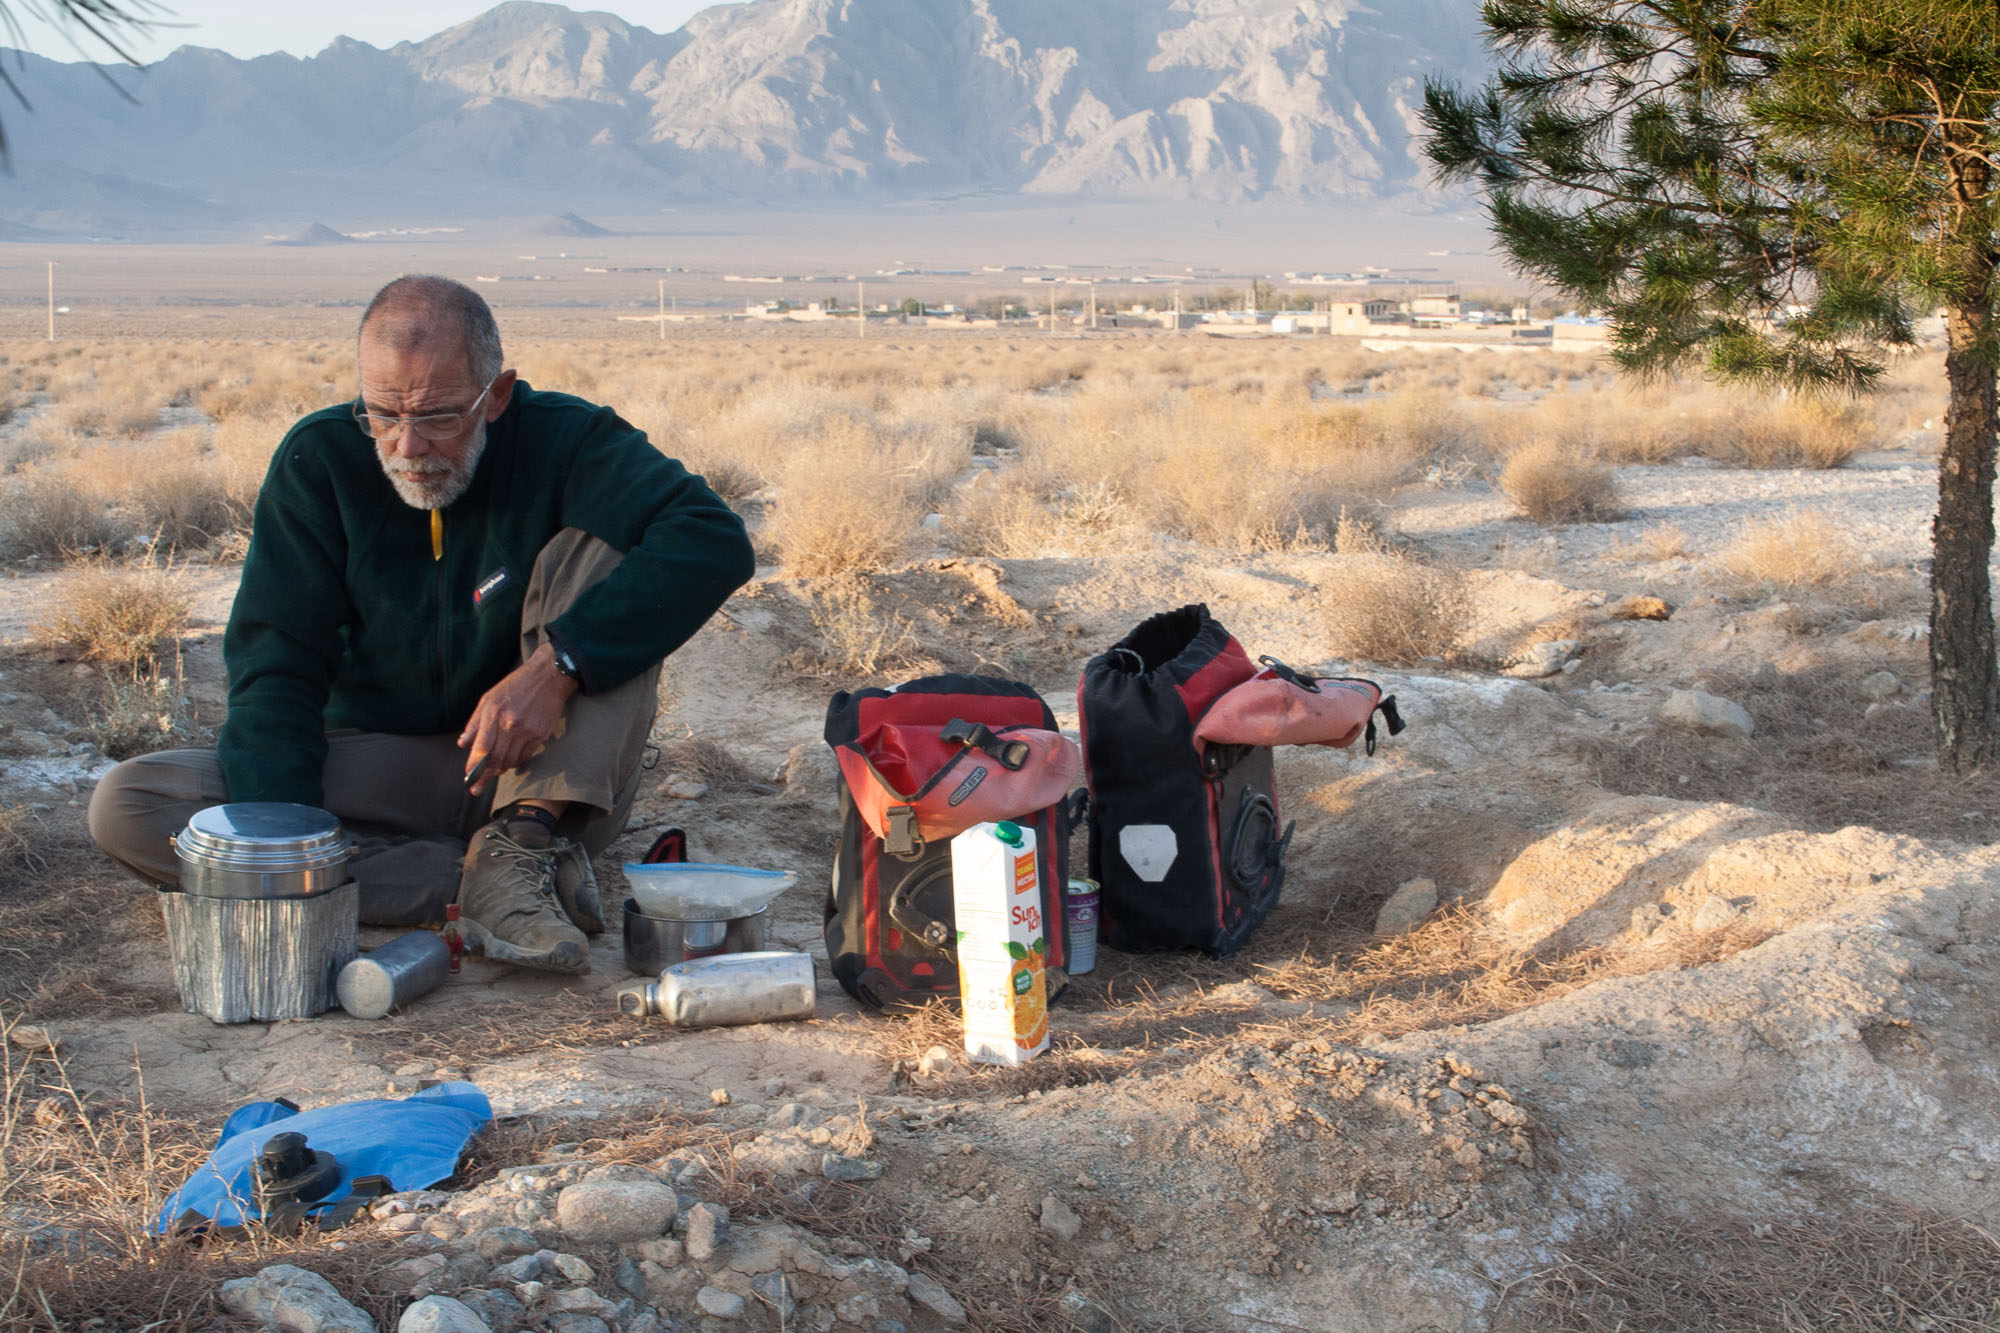 Cooking a spaghetti and veggies meal while free camping along the Yazd to Shiraz road